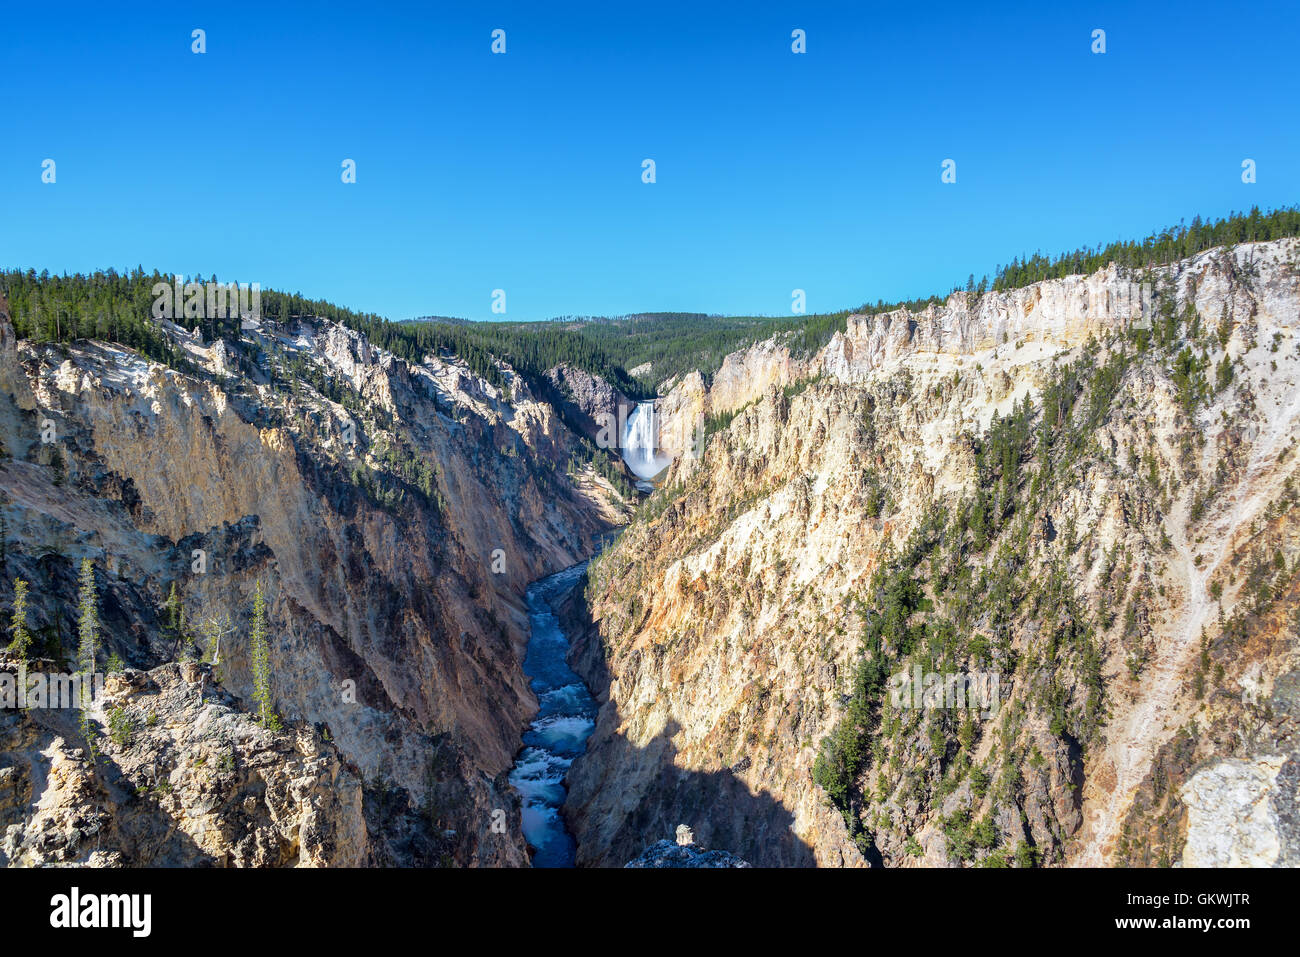 Wide angle view of Lower Yellowstone Falls in Yellowstone National Park - Stock Image